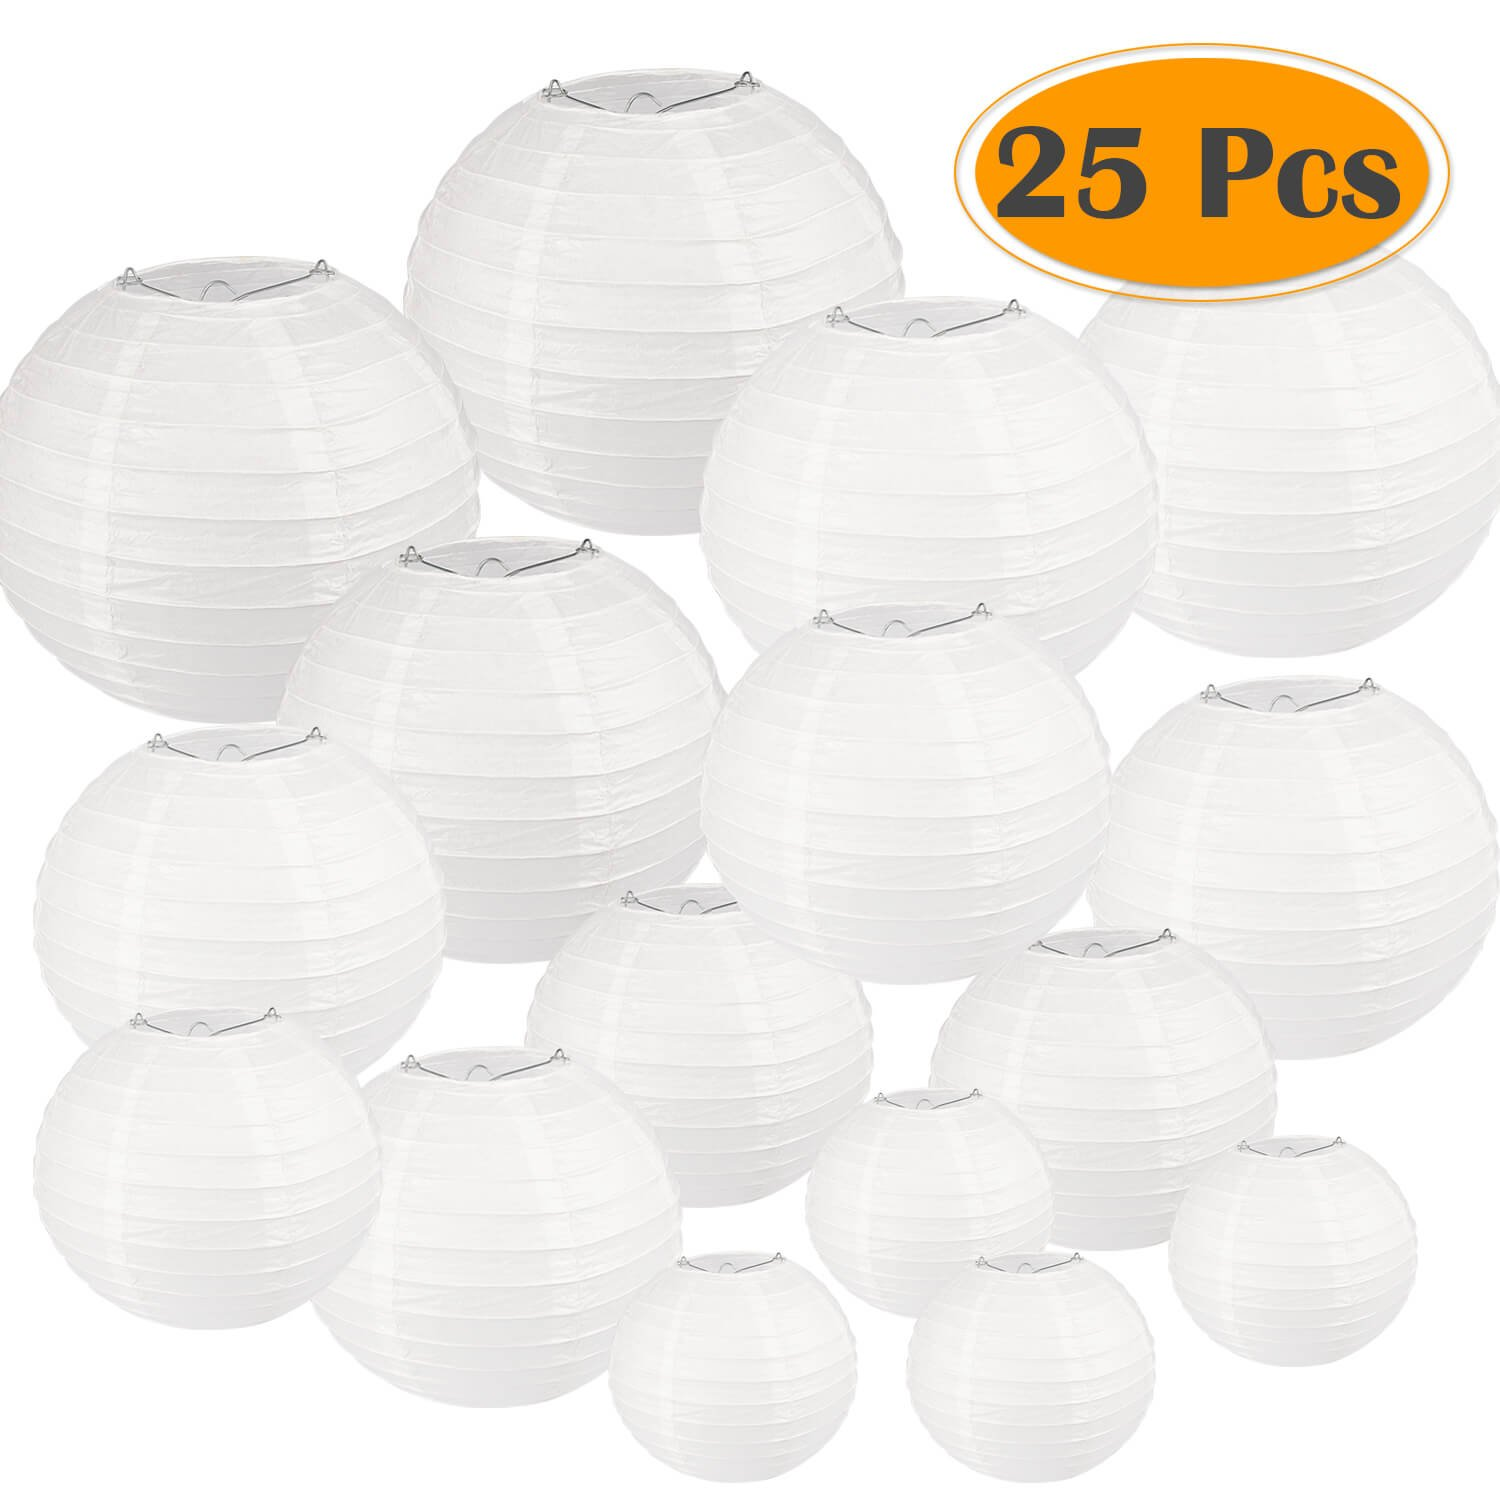 Selizo 25 Packs White Paper Lanterns with Assorted Sizes by selizo (Image #1)